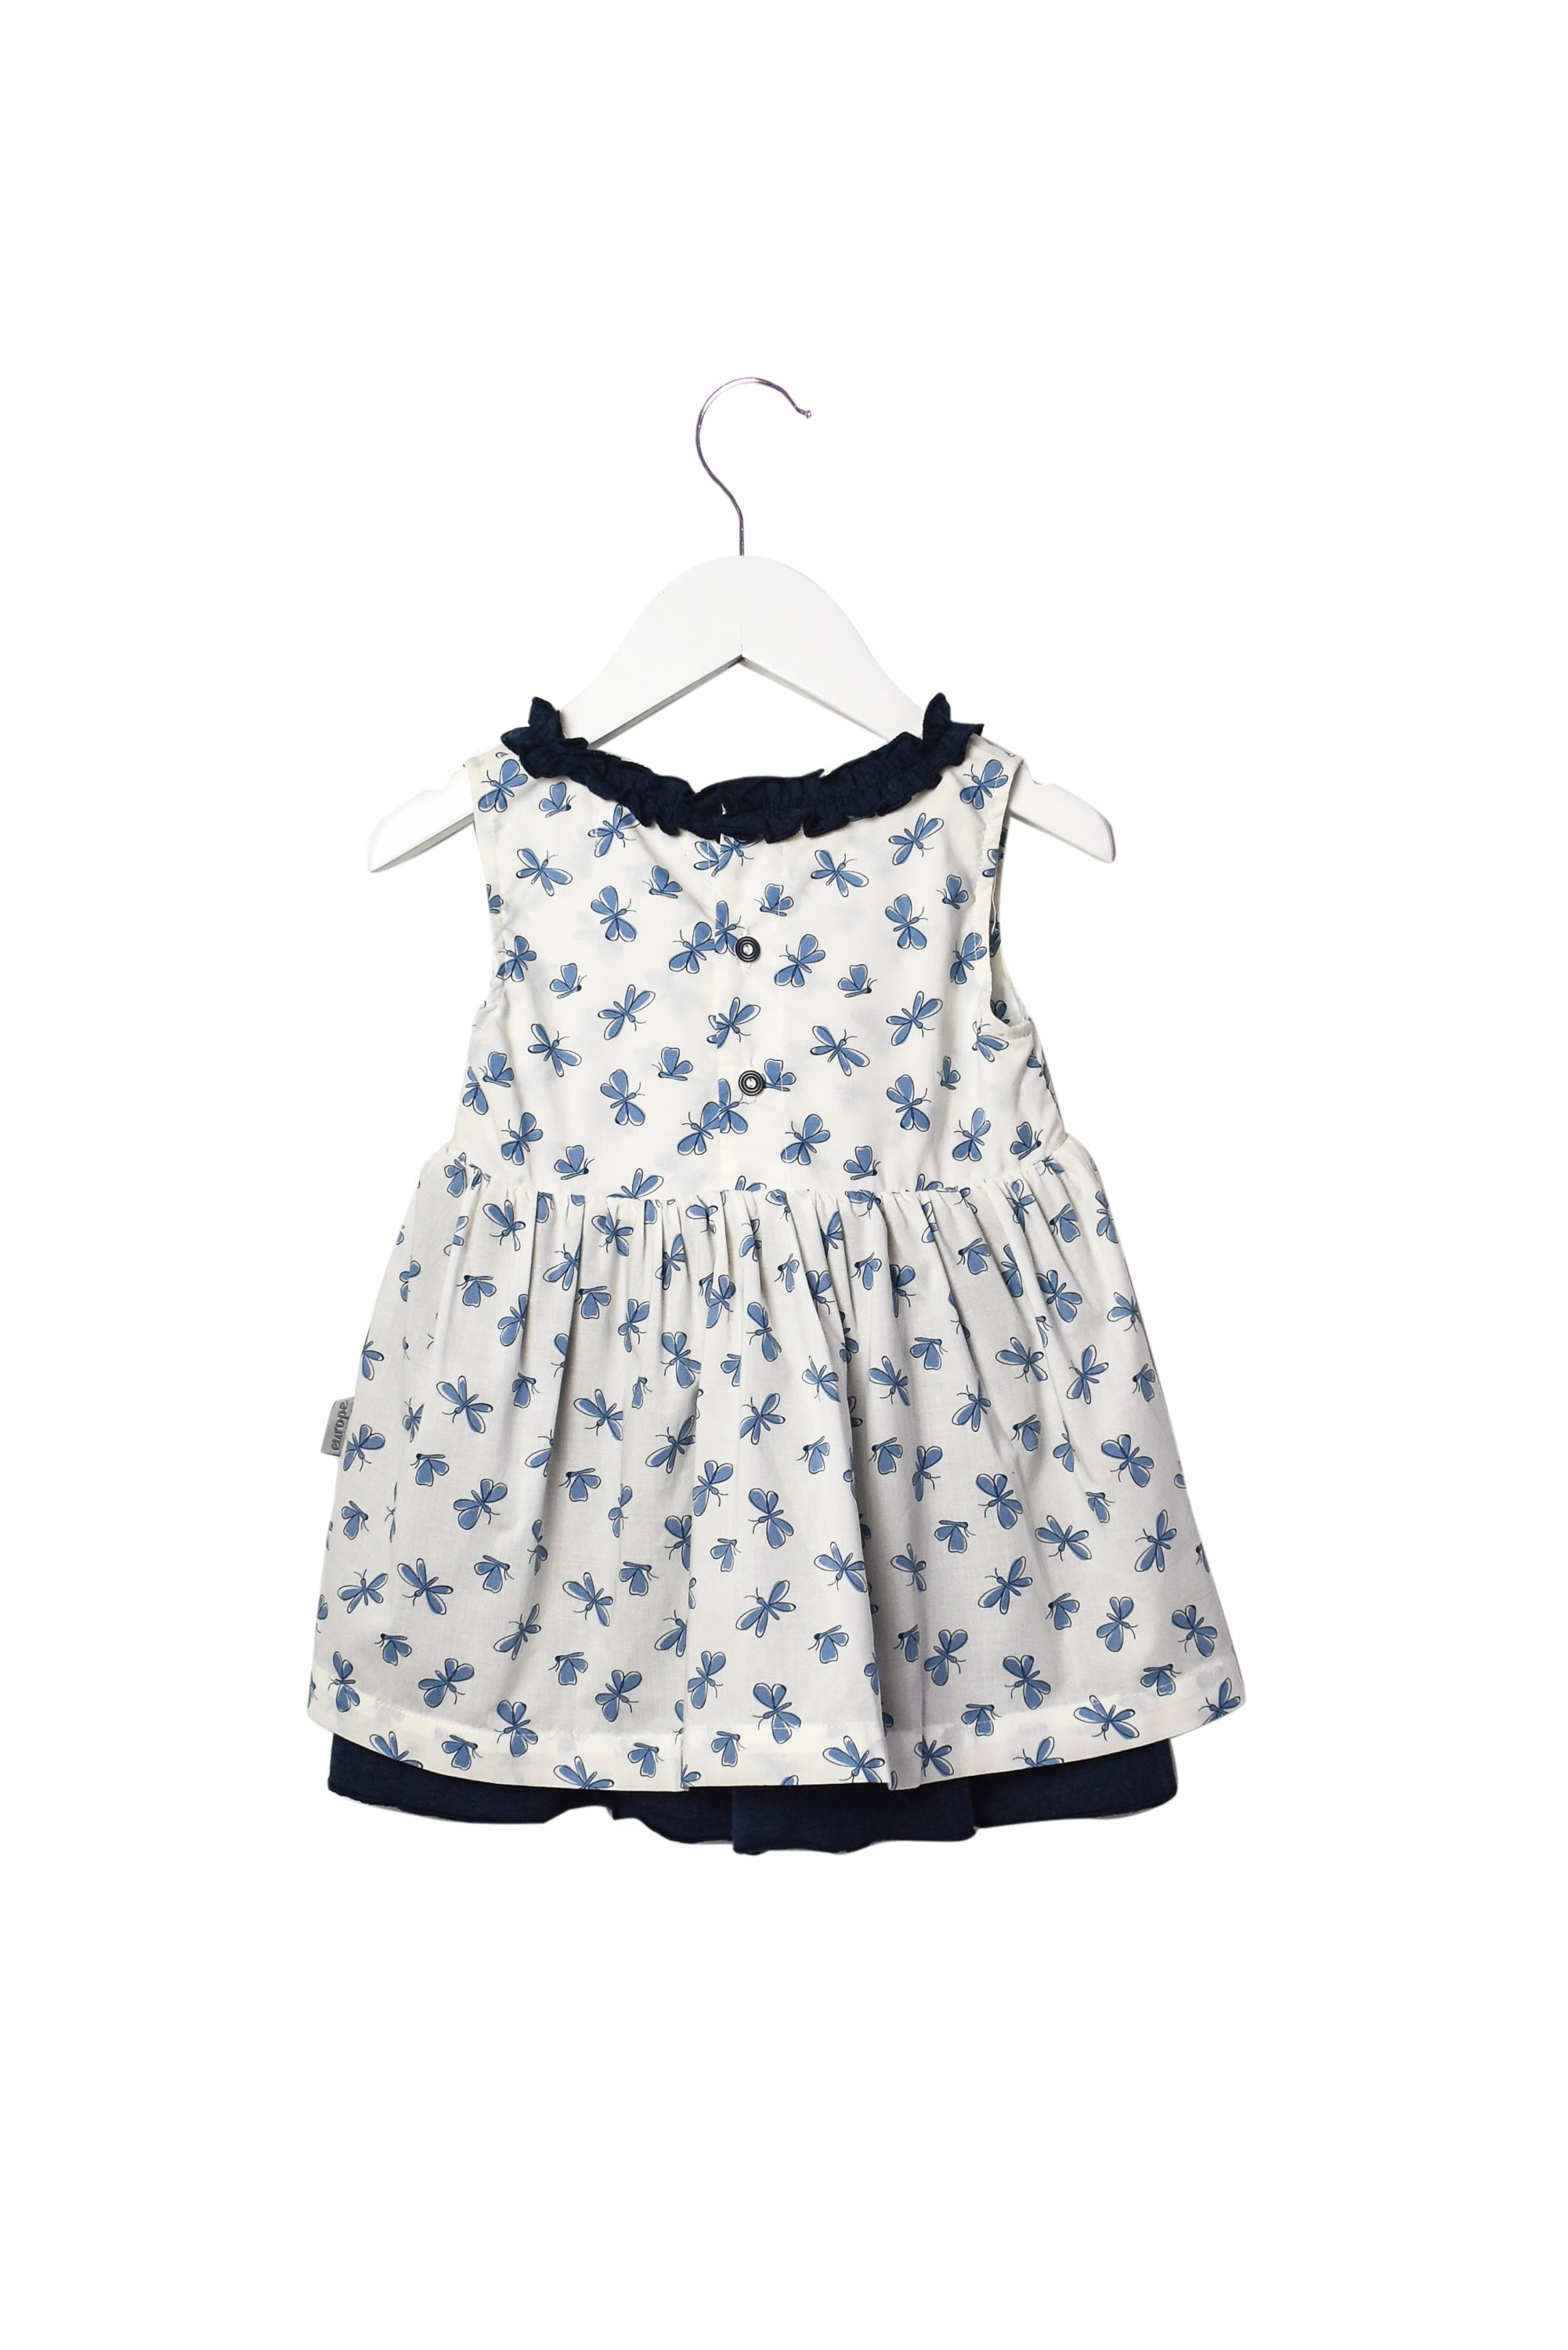 10008306 Mides Baby~ Dress 12M at Retykle